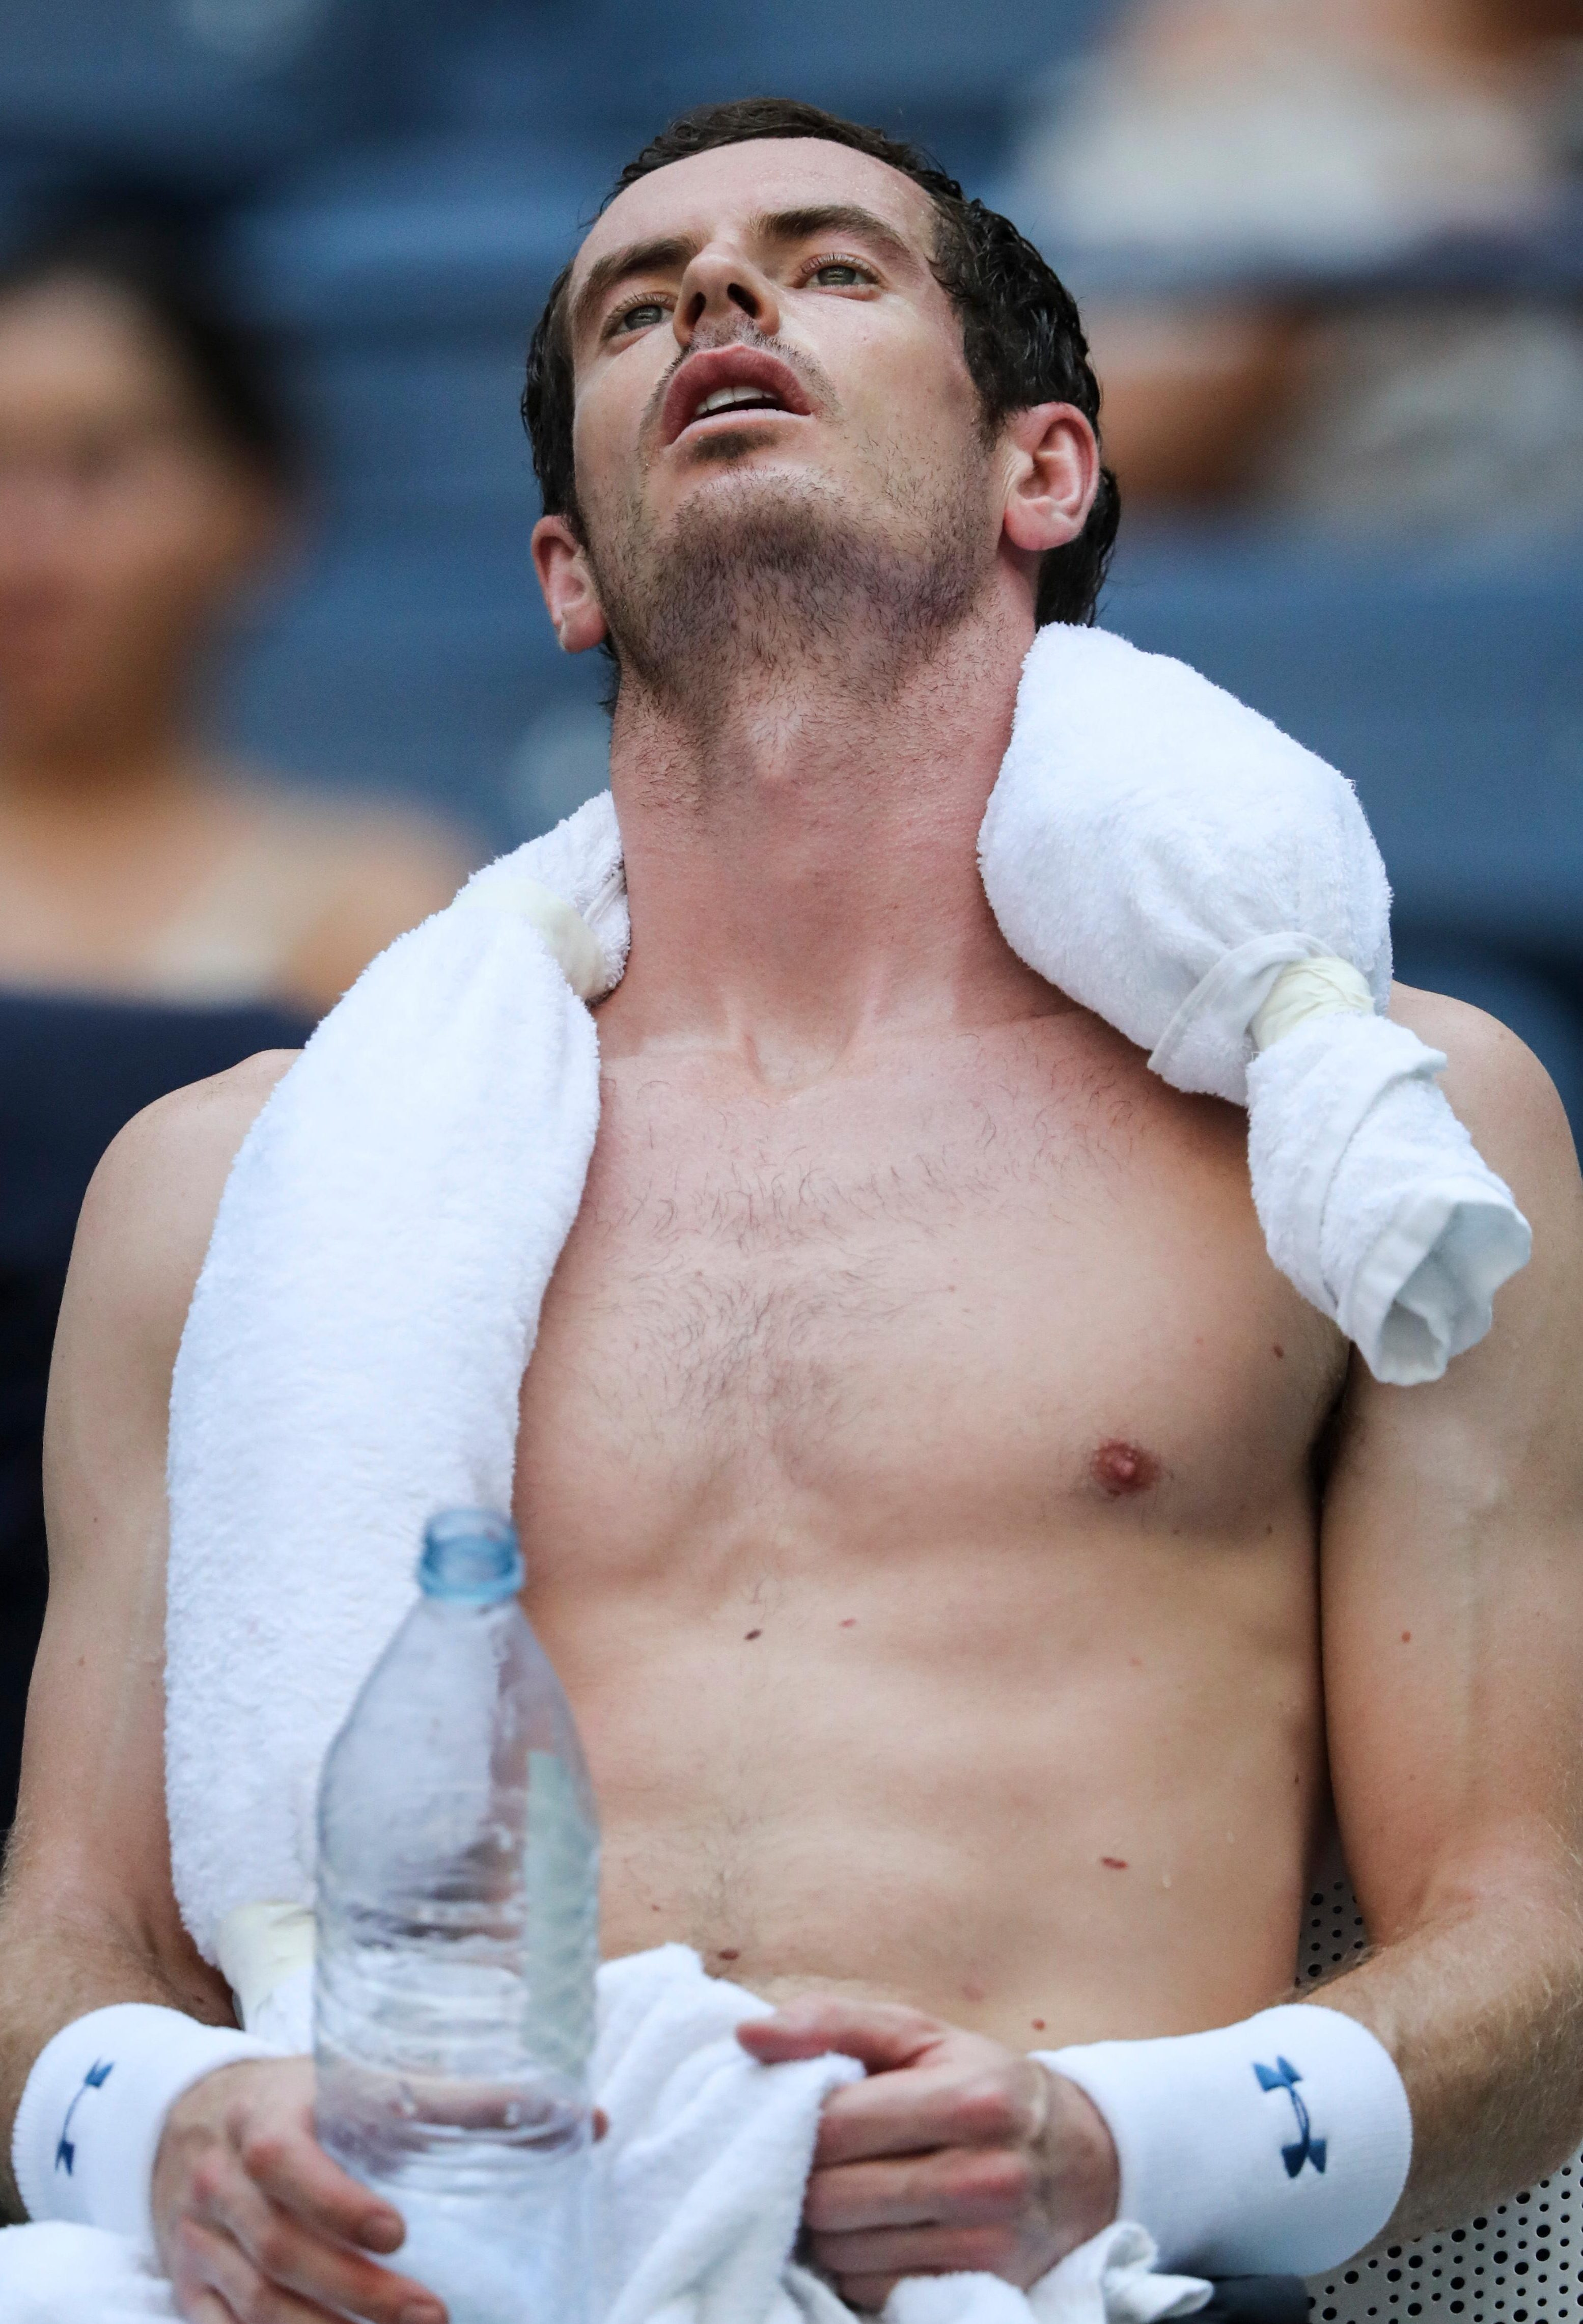 The Brit couldn't handle the heat on his return to grand slam tennis in scorching temperatures